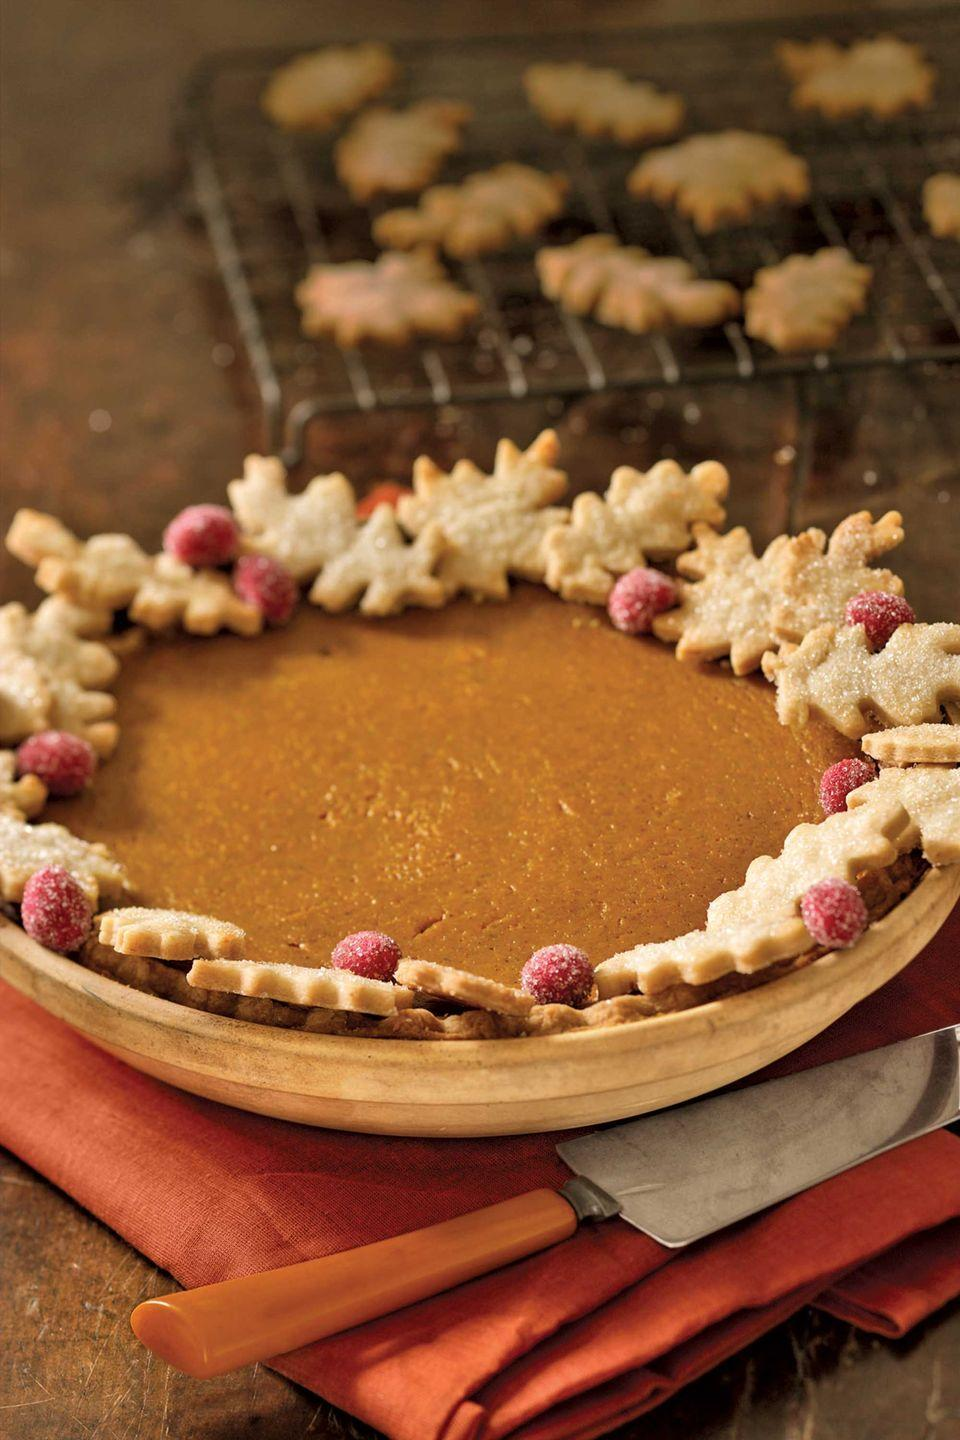 """<p>Pastry oak leaves look pretty and hide crust imperfections. For quick color, dot with fresh cranberries that you've coated with corn syrup and rolled in sugar.</p><p><strong><a href=""""https://www.countryliving.com/food-drinks/recipes/a489/pumpkin-pie/"""" rel=""""nofollow noopener"""" target=""""_blank"""" data-ylk=""""slk:Get the recipe"""" class=""""link rapid-noclick-resp"""">Get the recipe</a>.</strong></p>"""